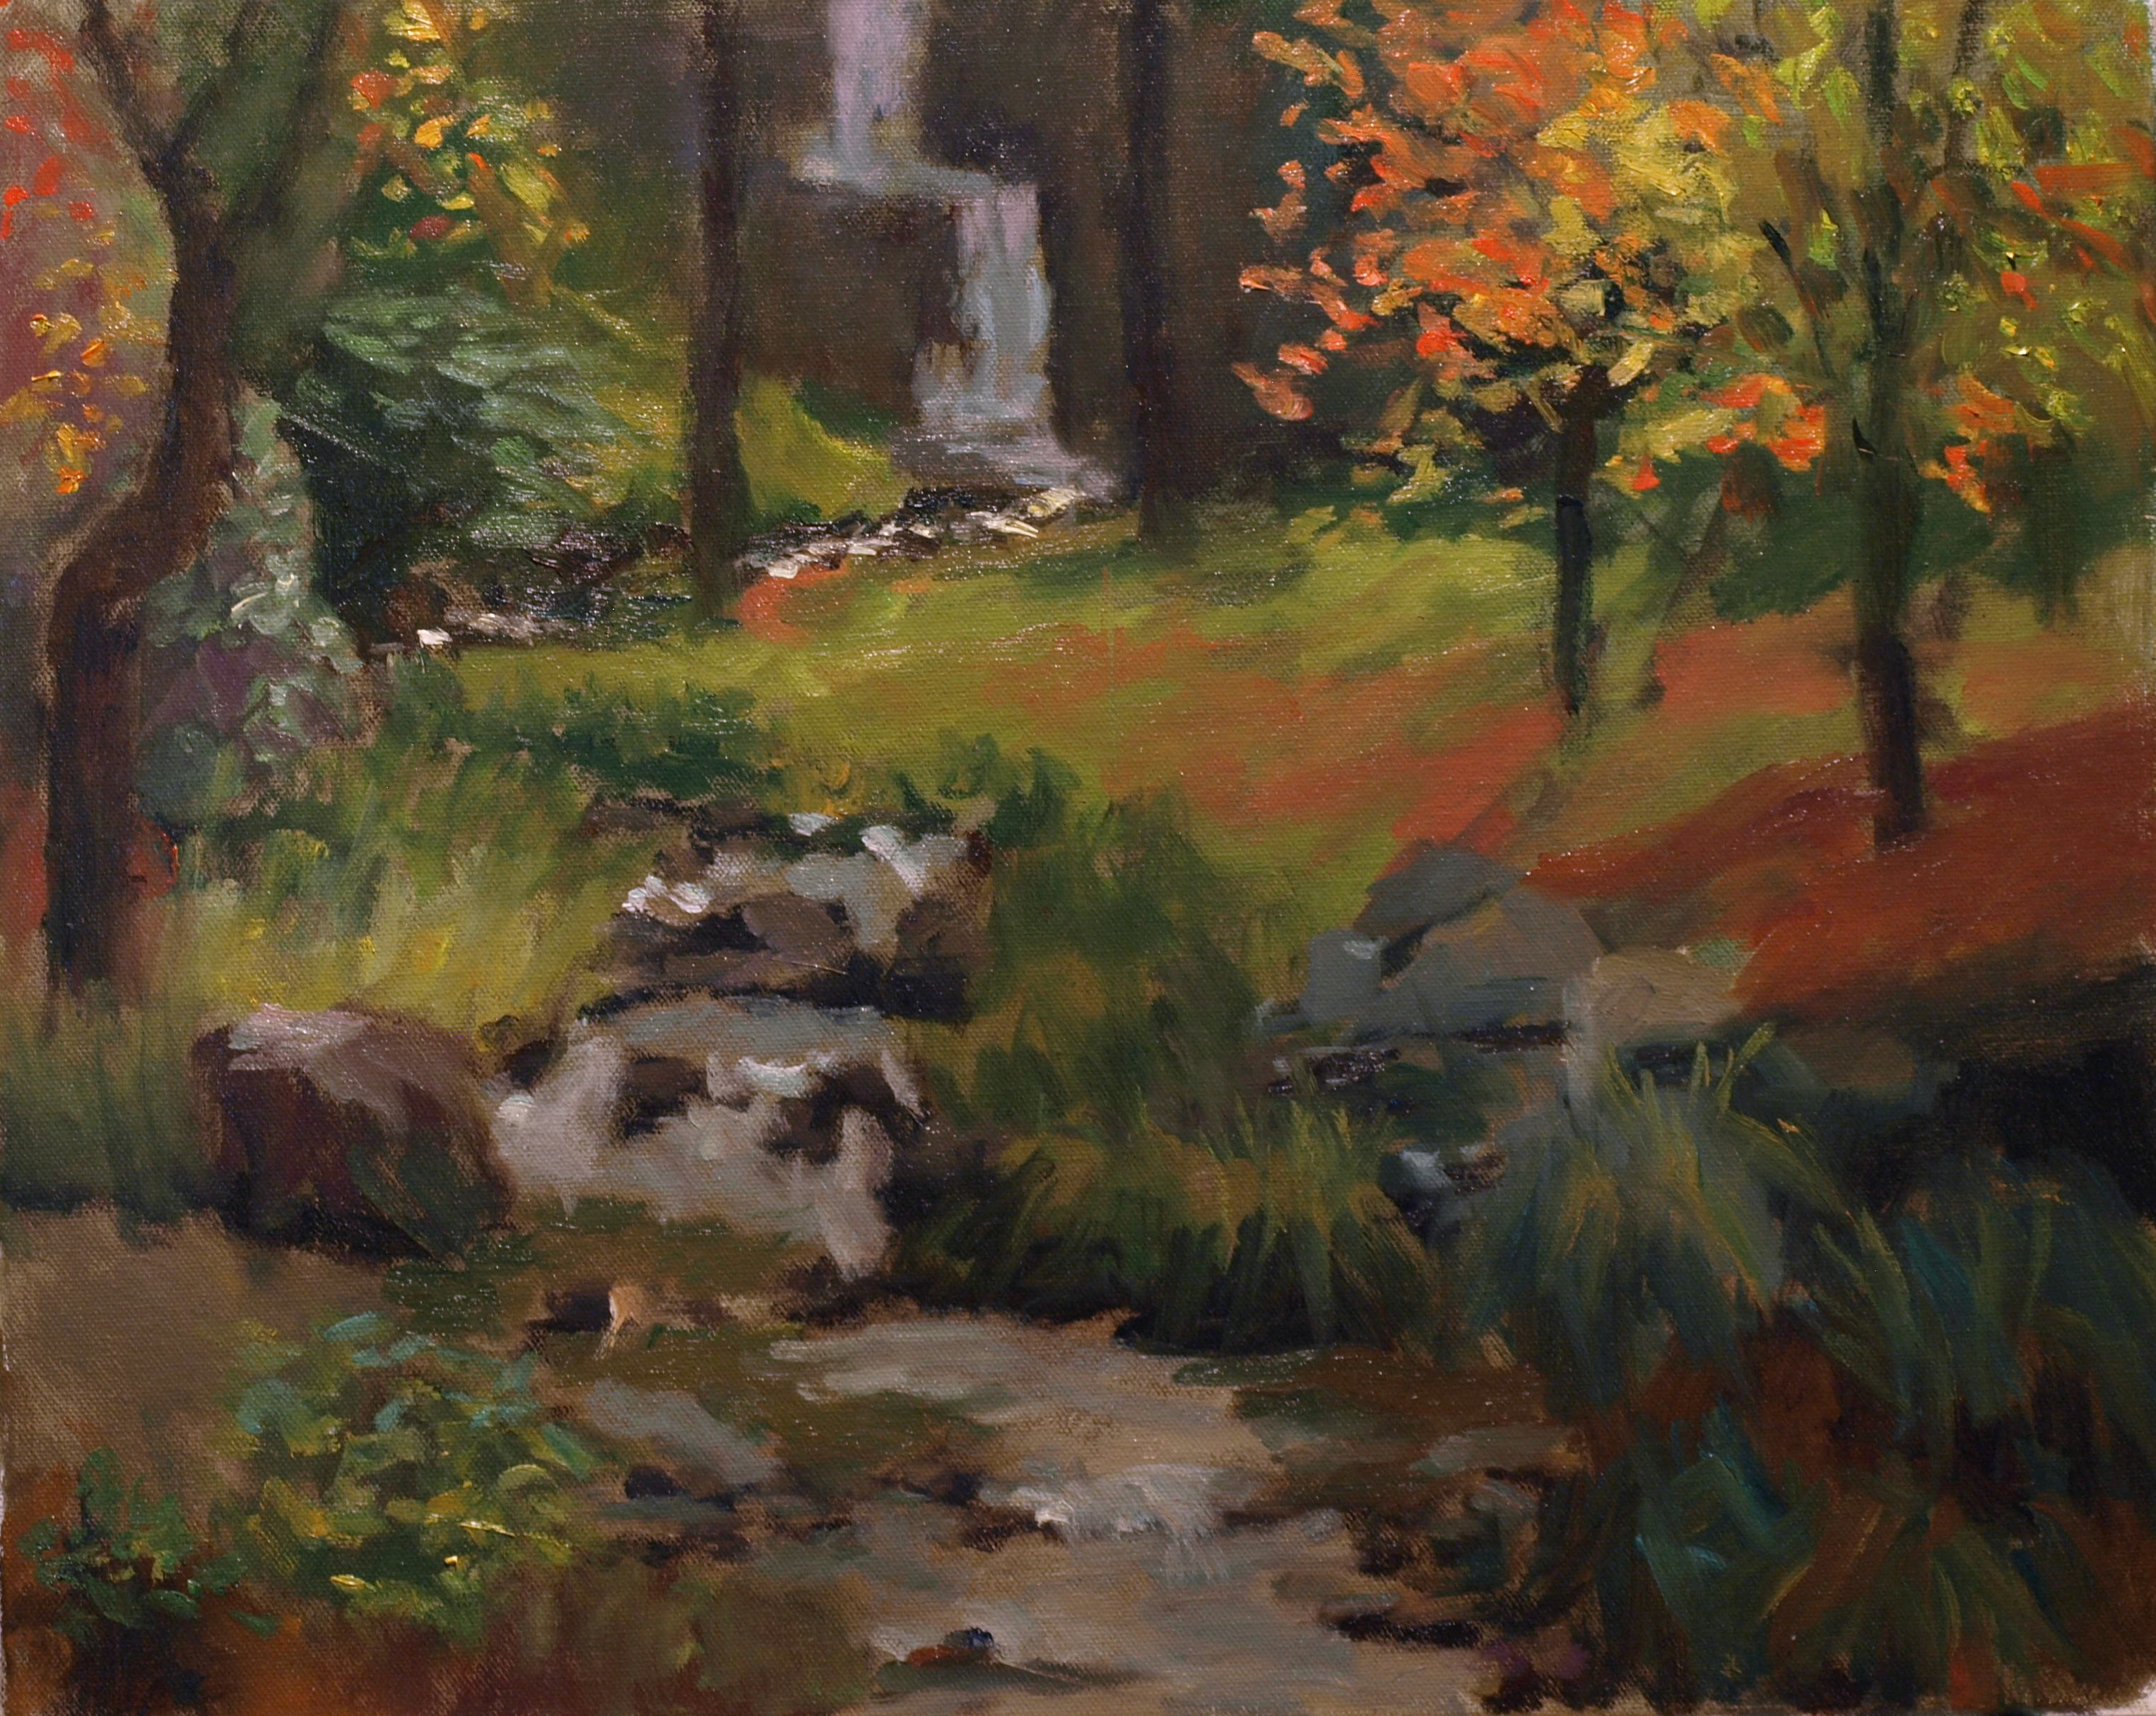 Stream at Kent Falls, Oil on Canvas, 16 x 20 Inches, by Richard Stalter, $450